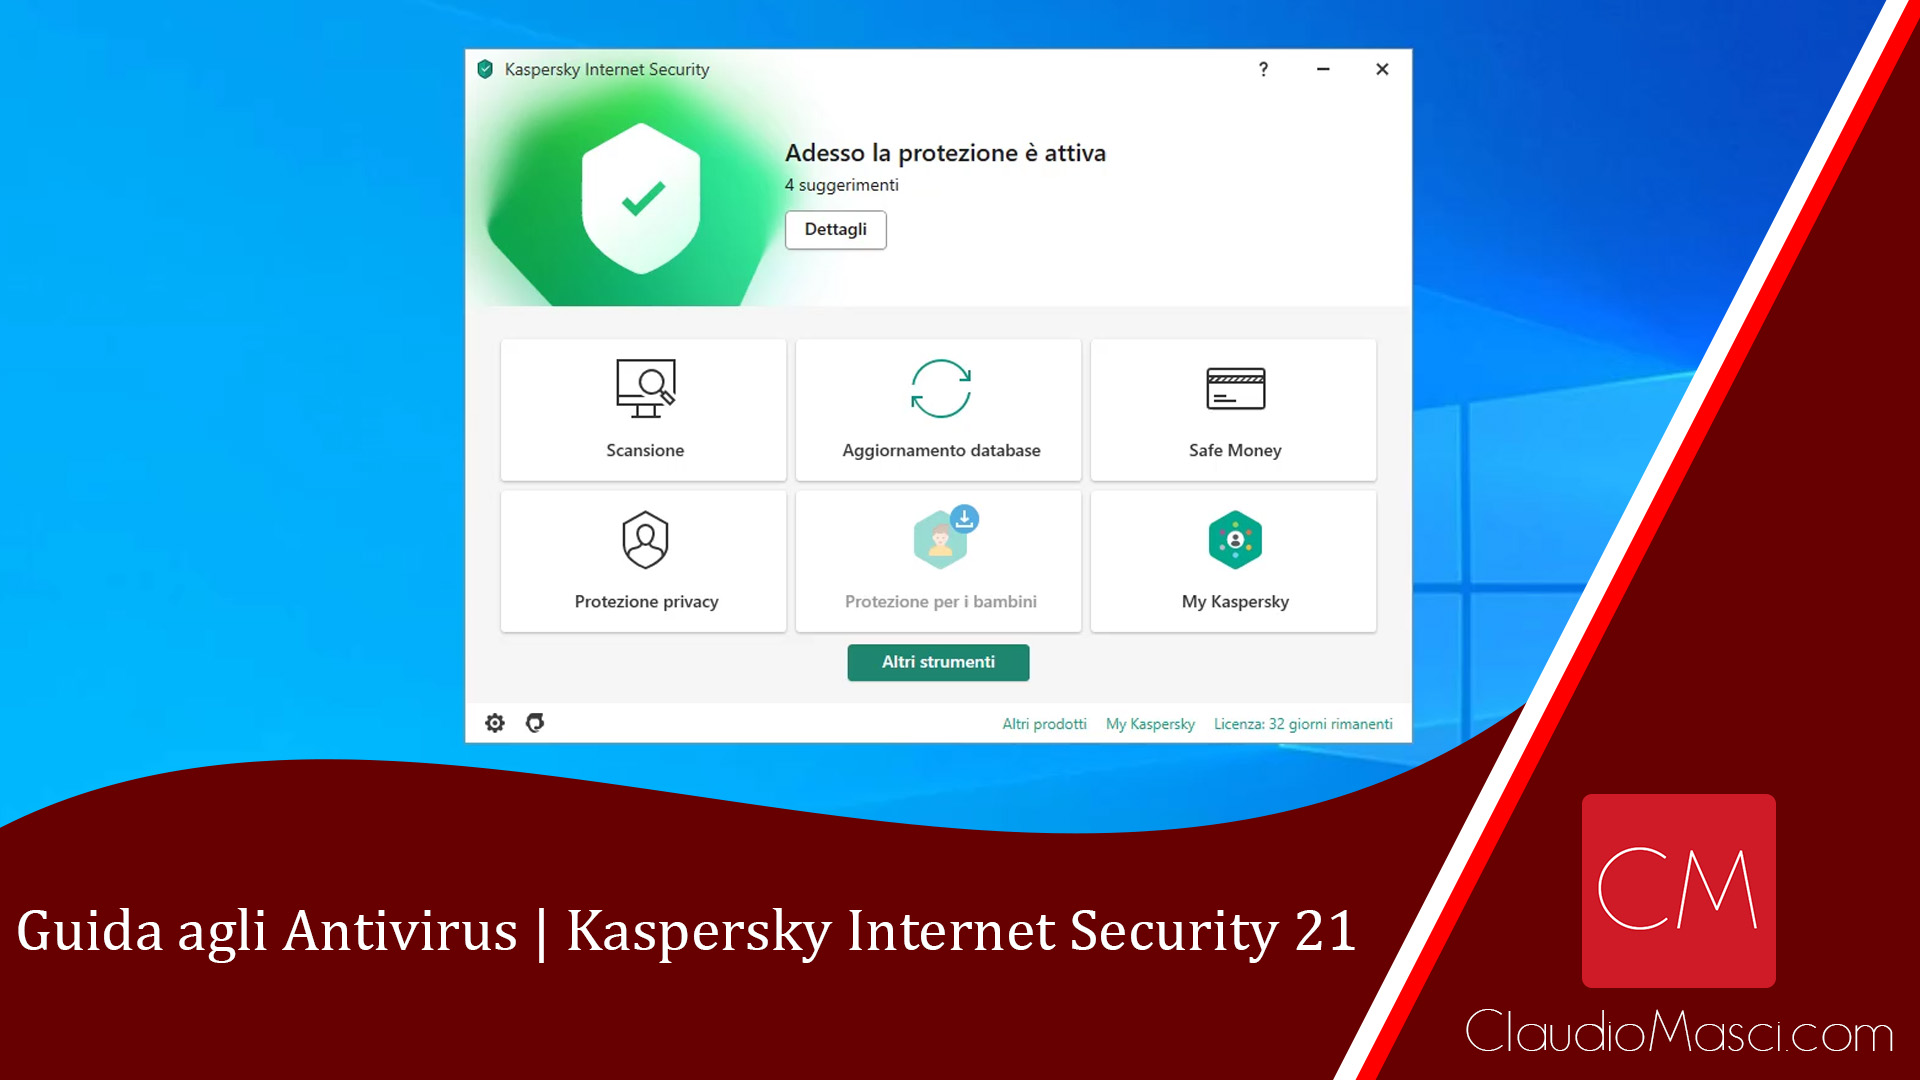 Guida agli Antivirus – Kaspersky Internet Security 21